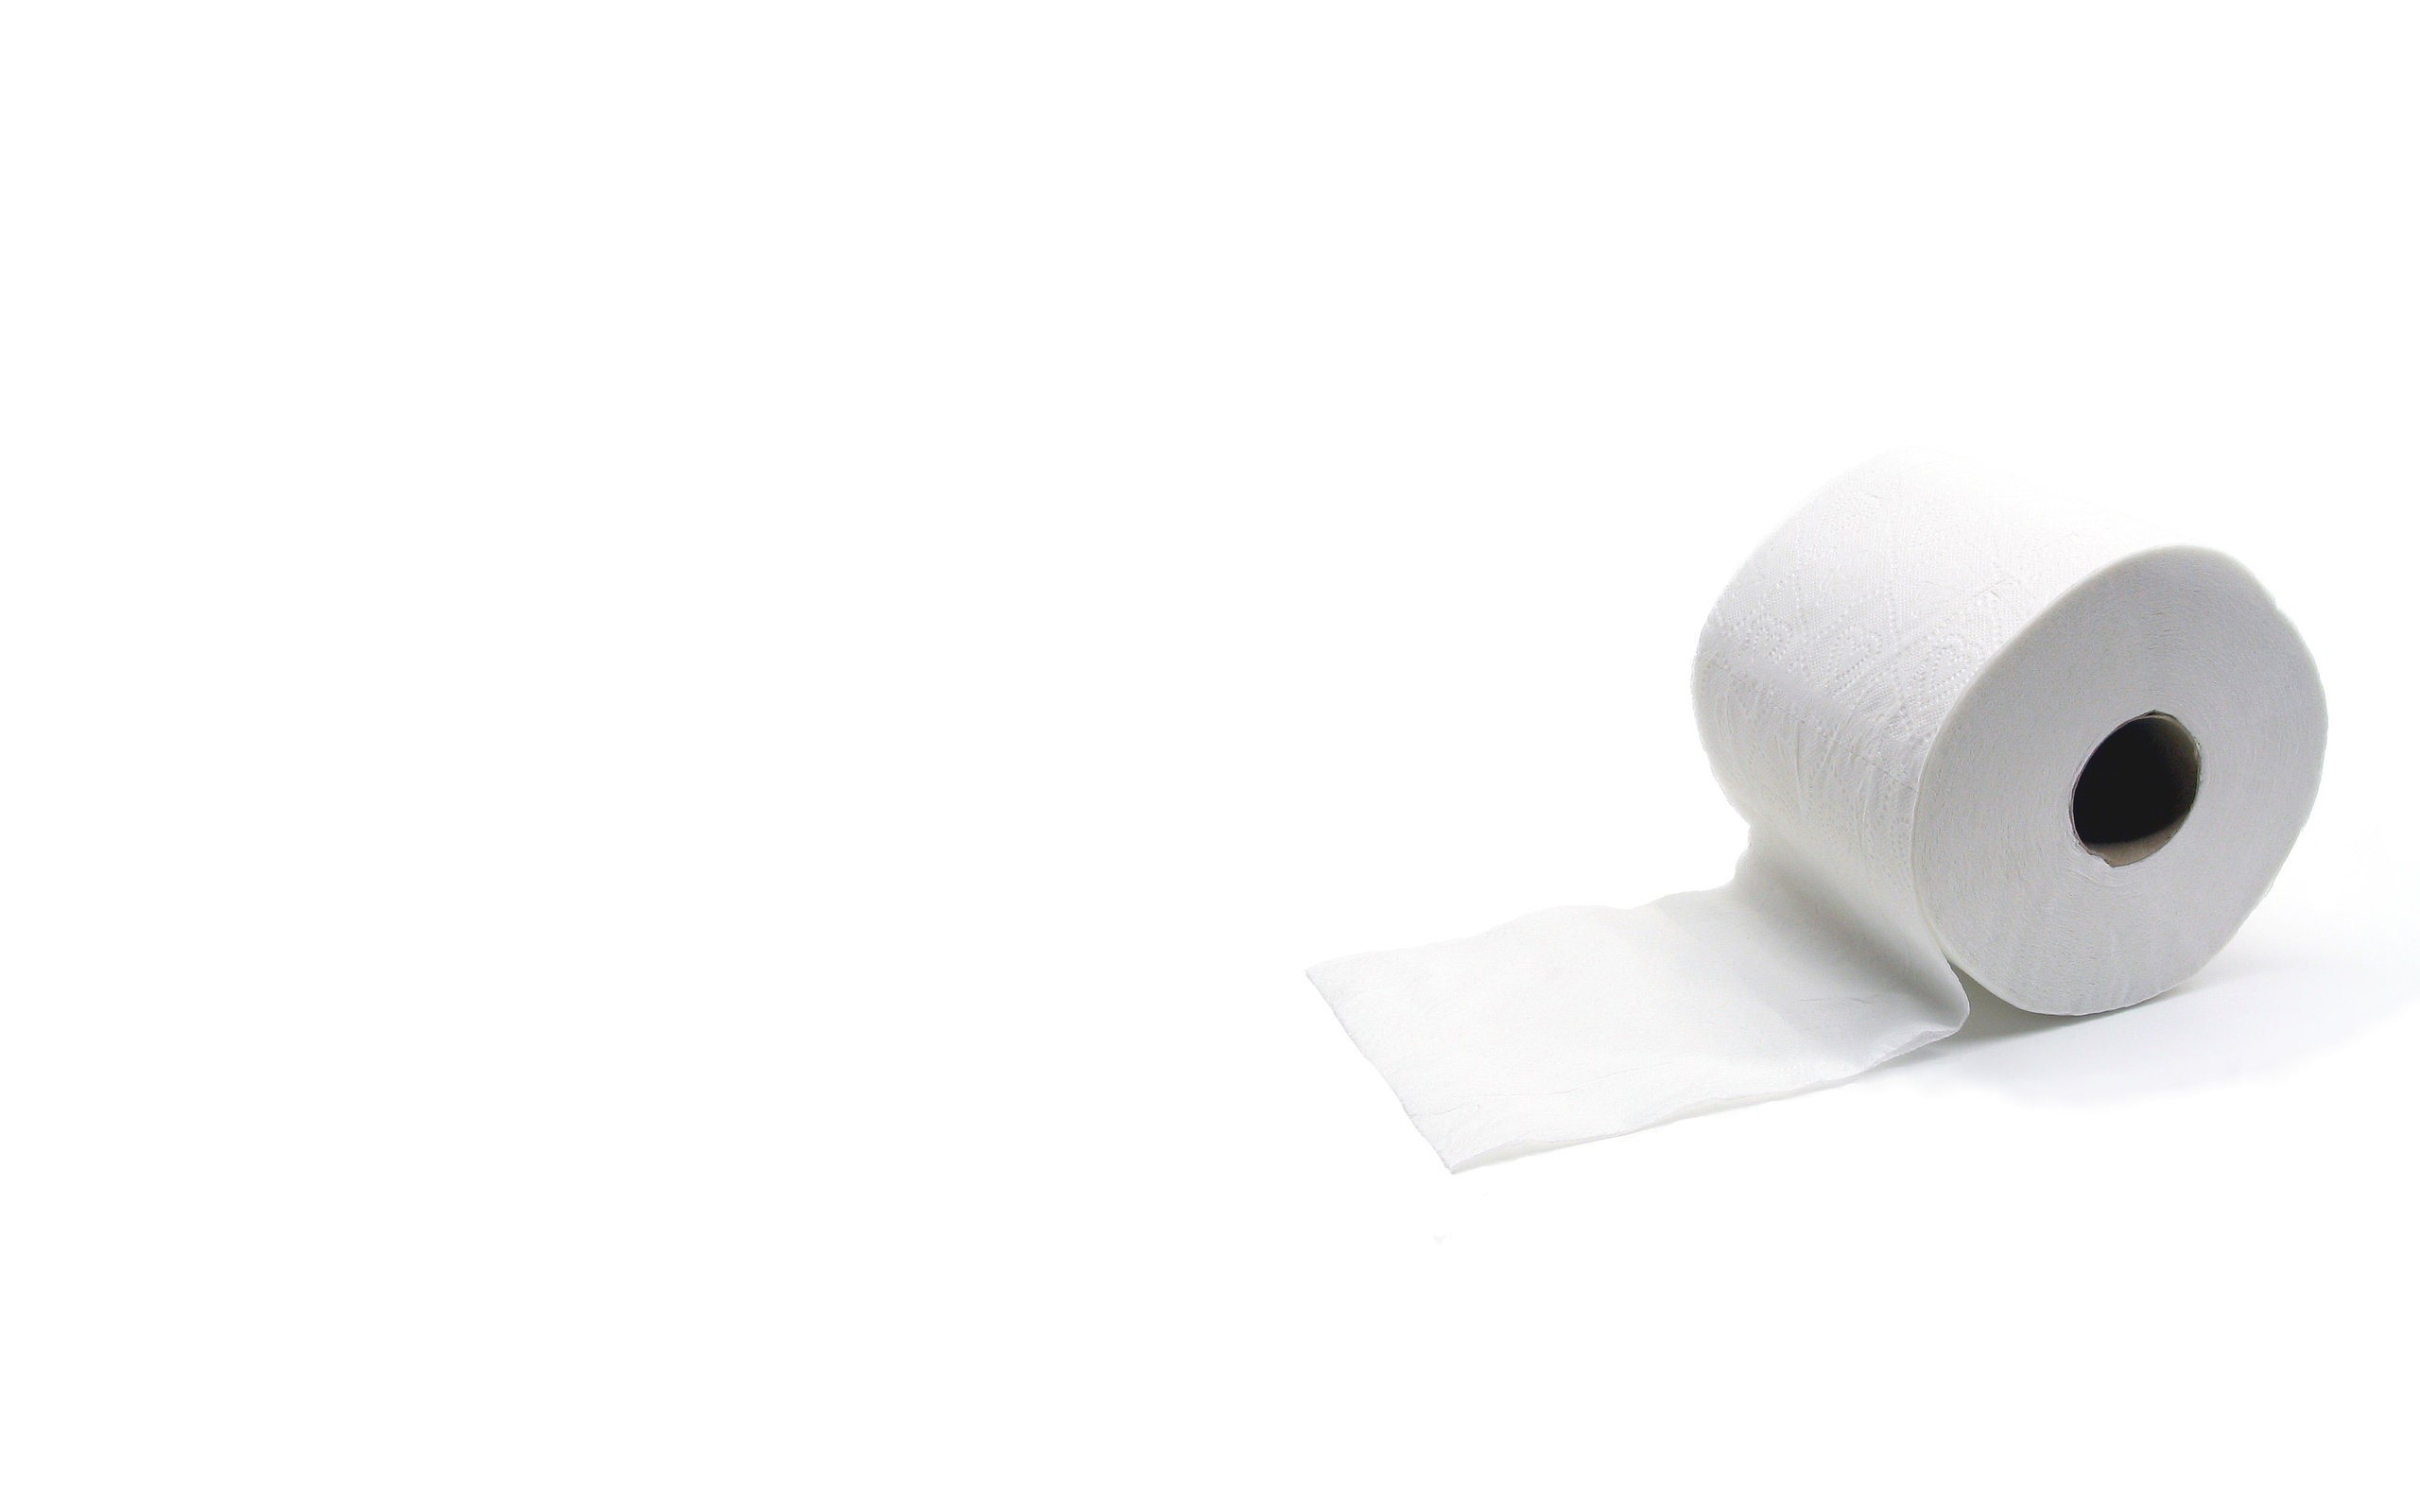 Toilet Paper PPT Background Background for Powerpoint Program